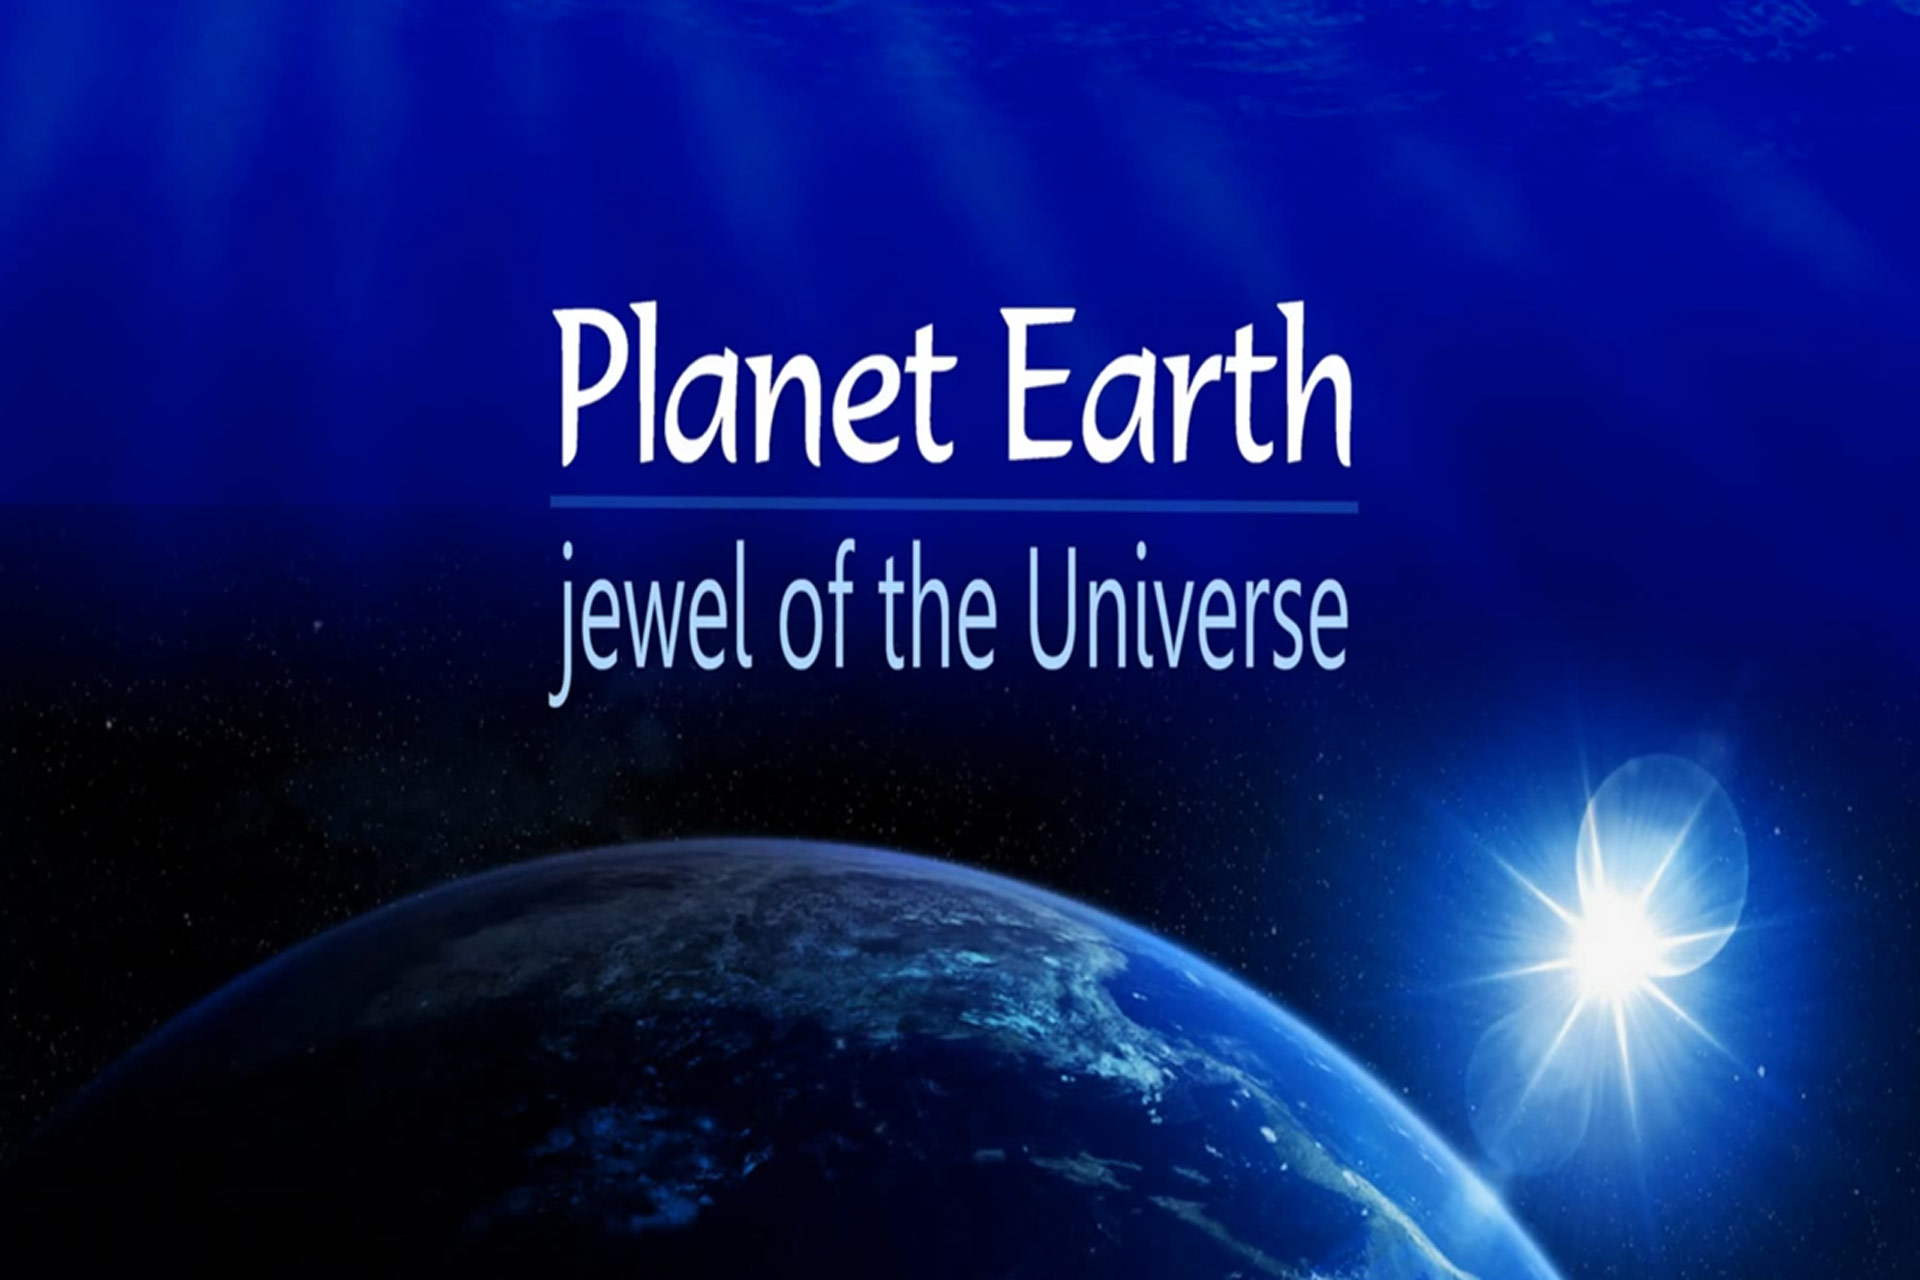 Planet Earth, jewel of the Universe